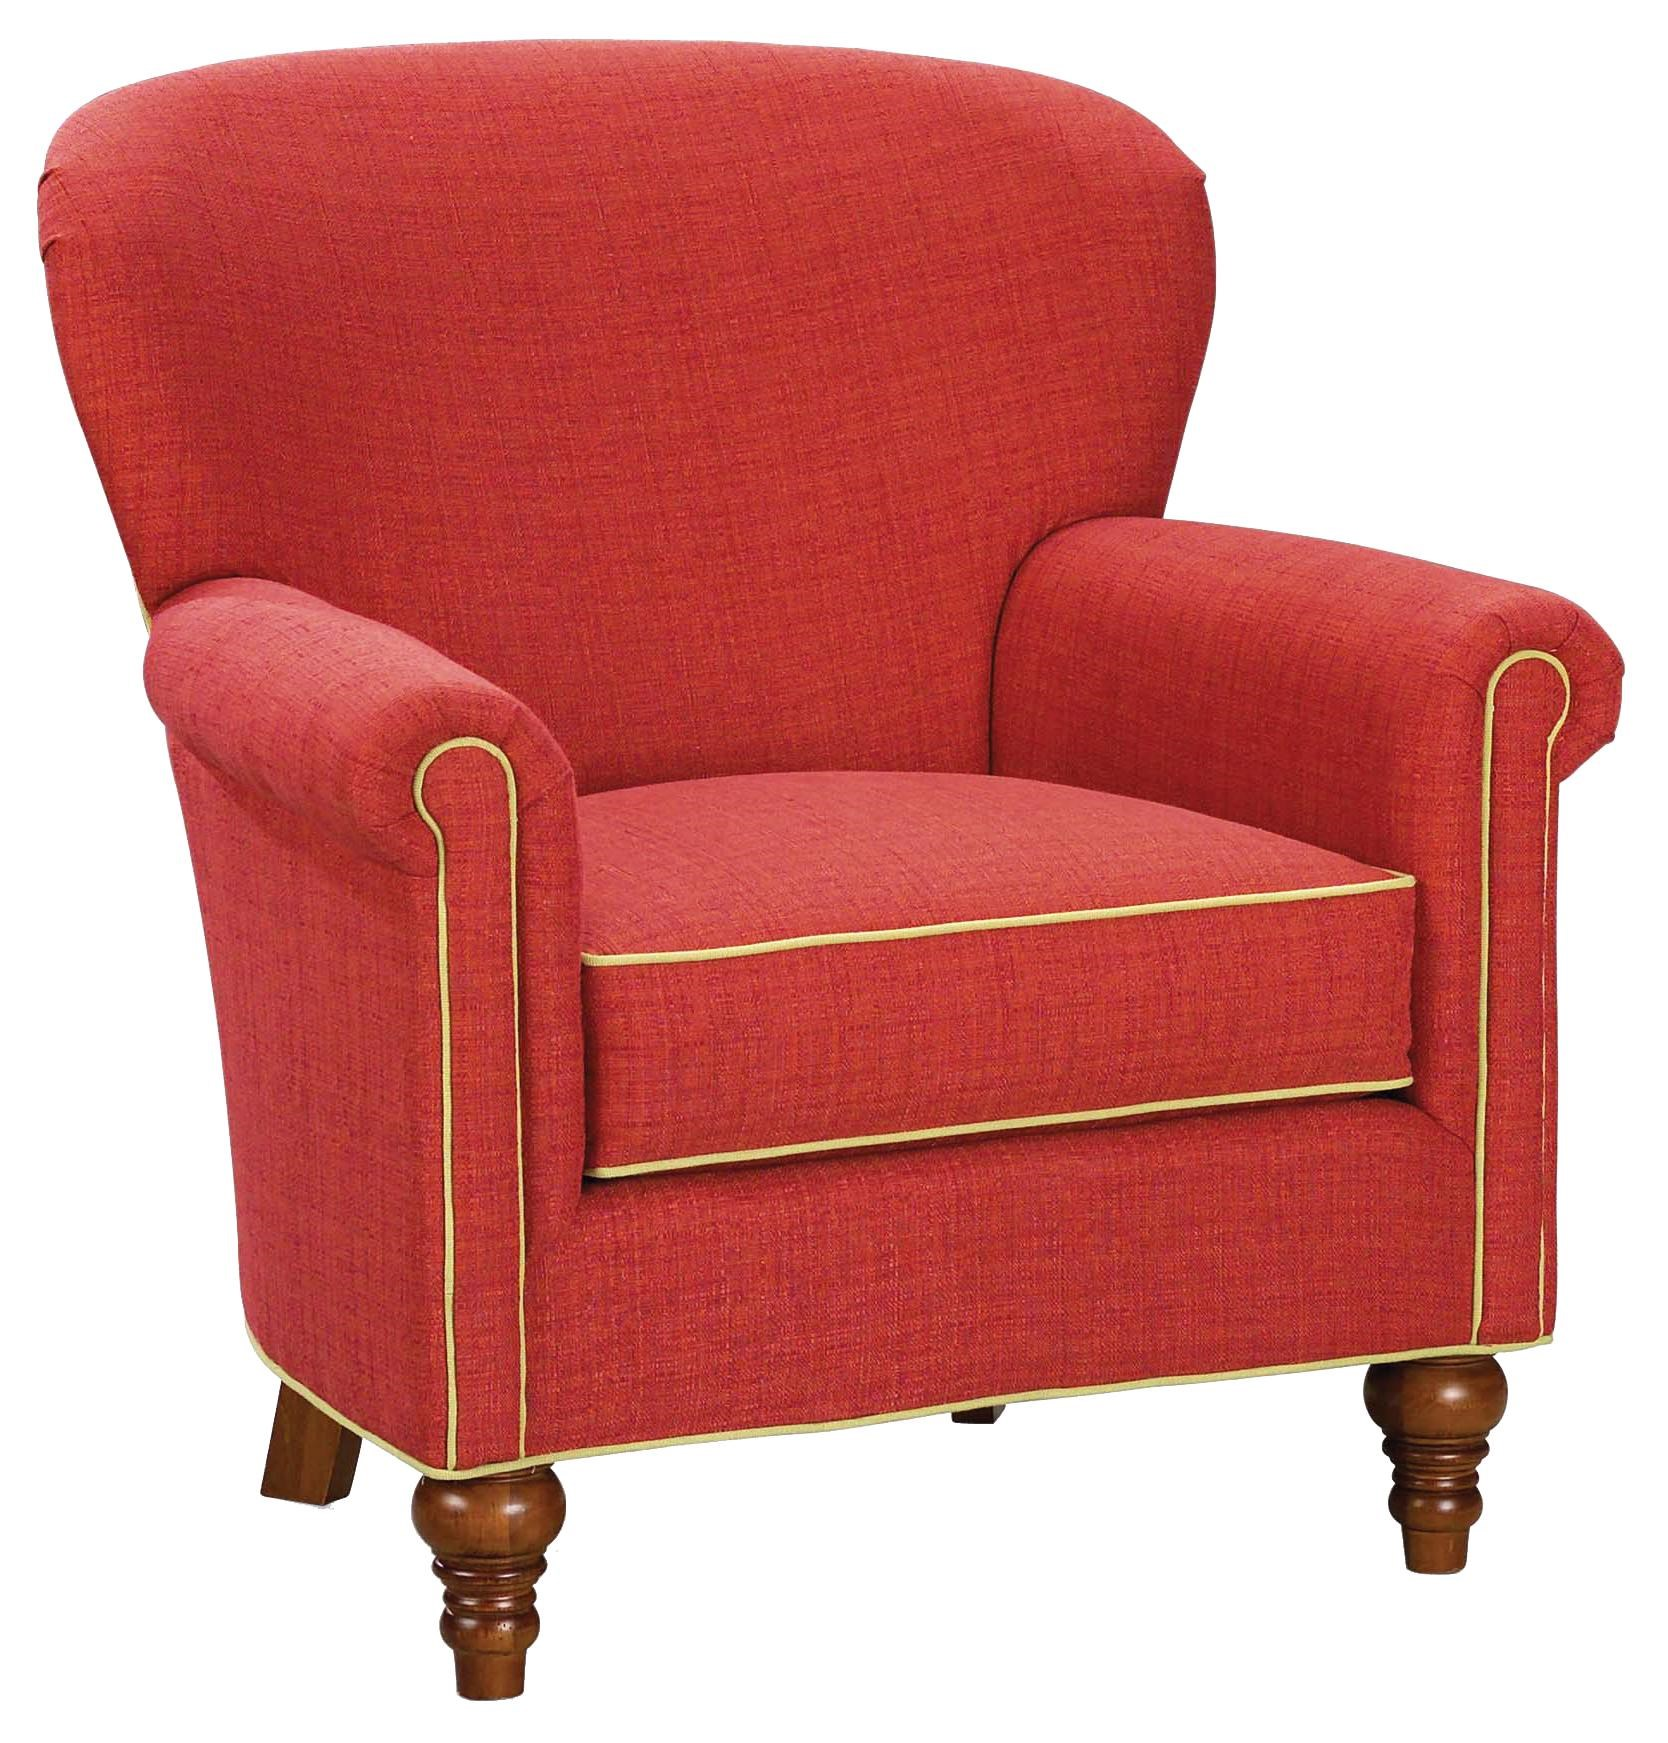 Chairs Contemporary Upholstered Chair By Fairfield